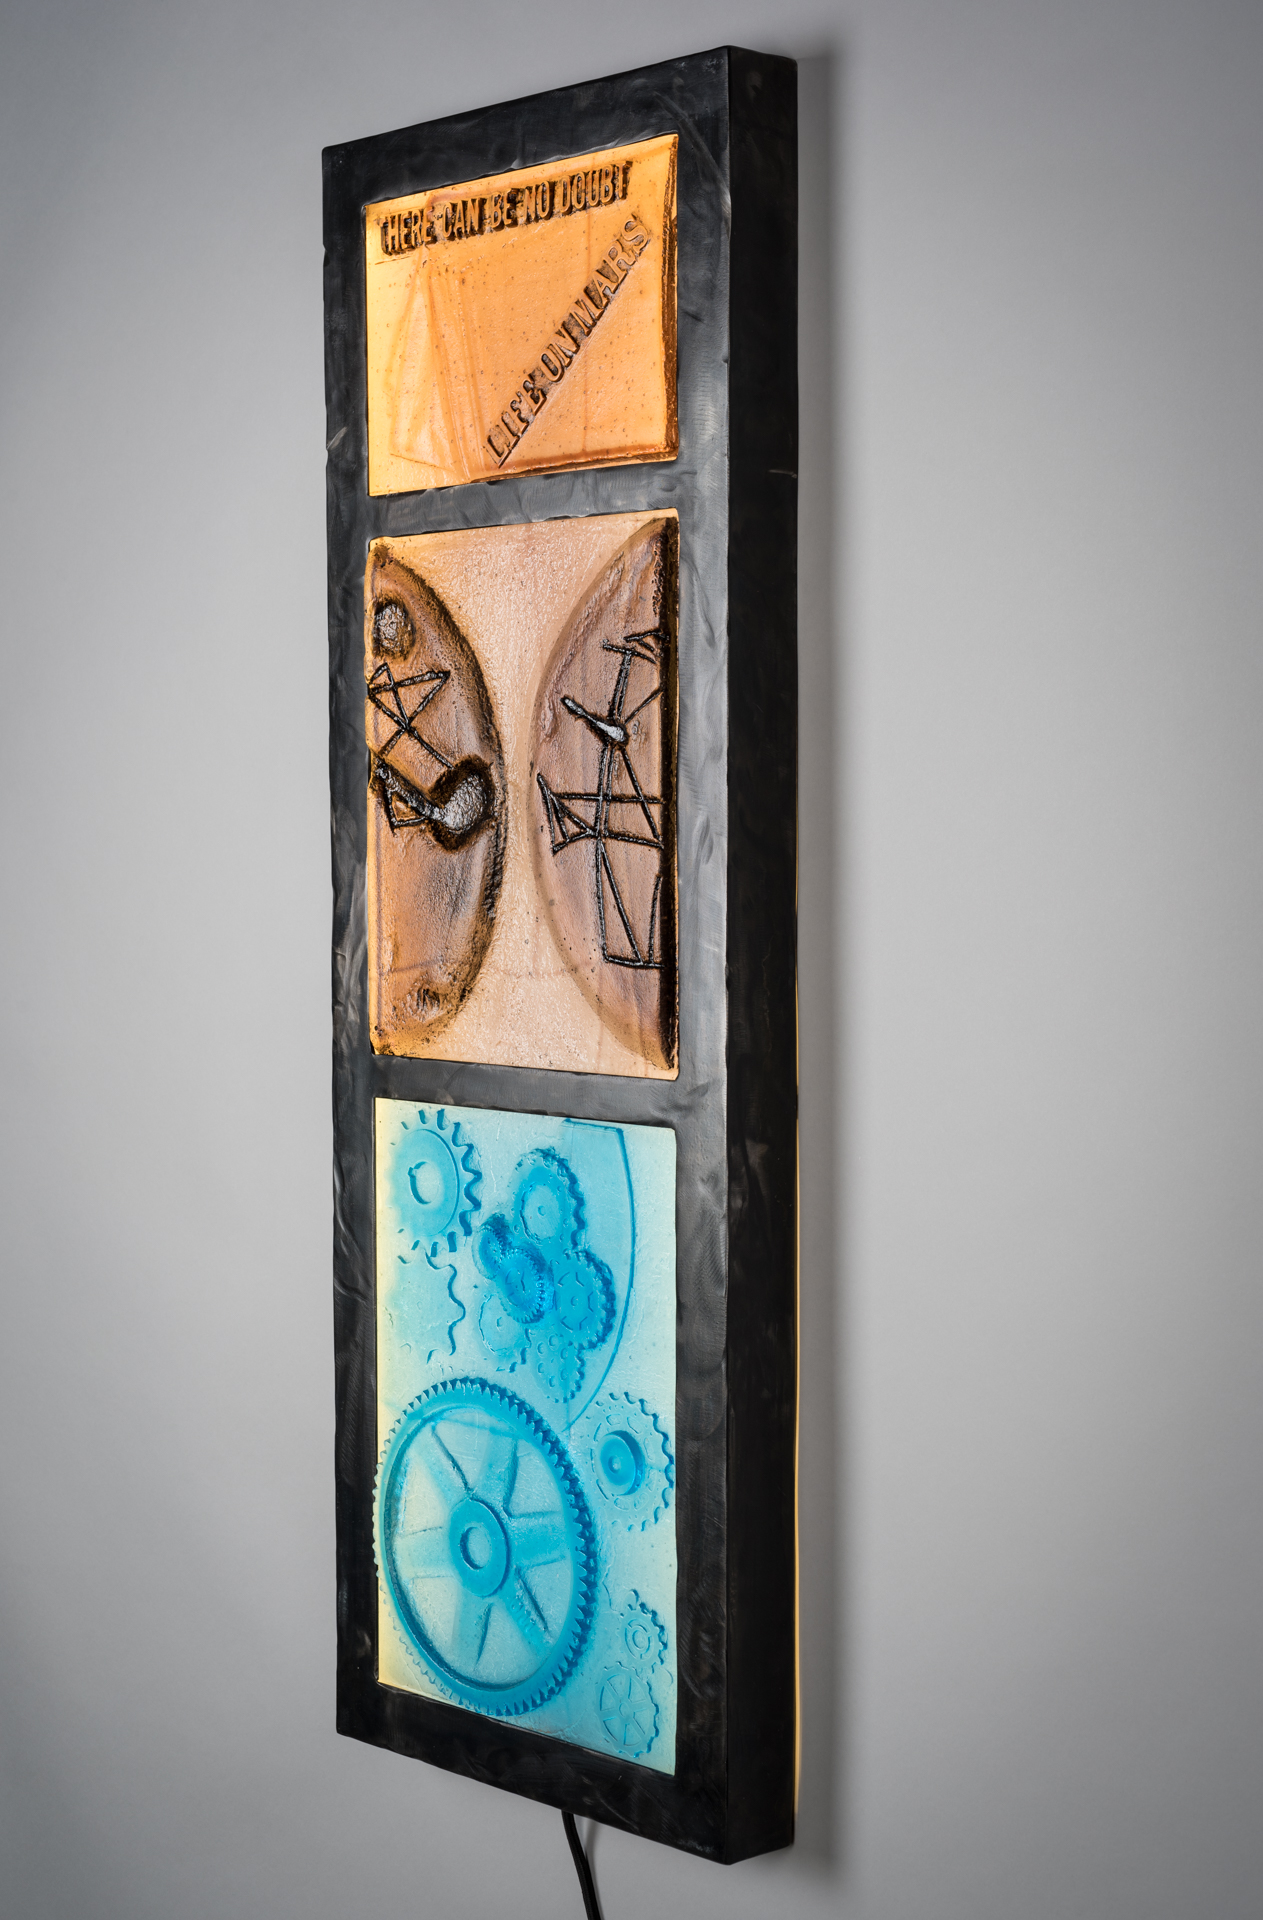 Wall sculpture about life on Mars; Percival Lowell